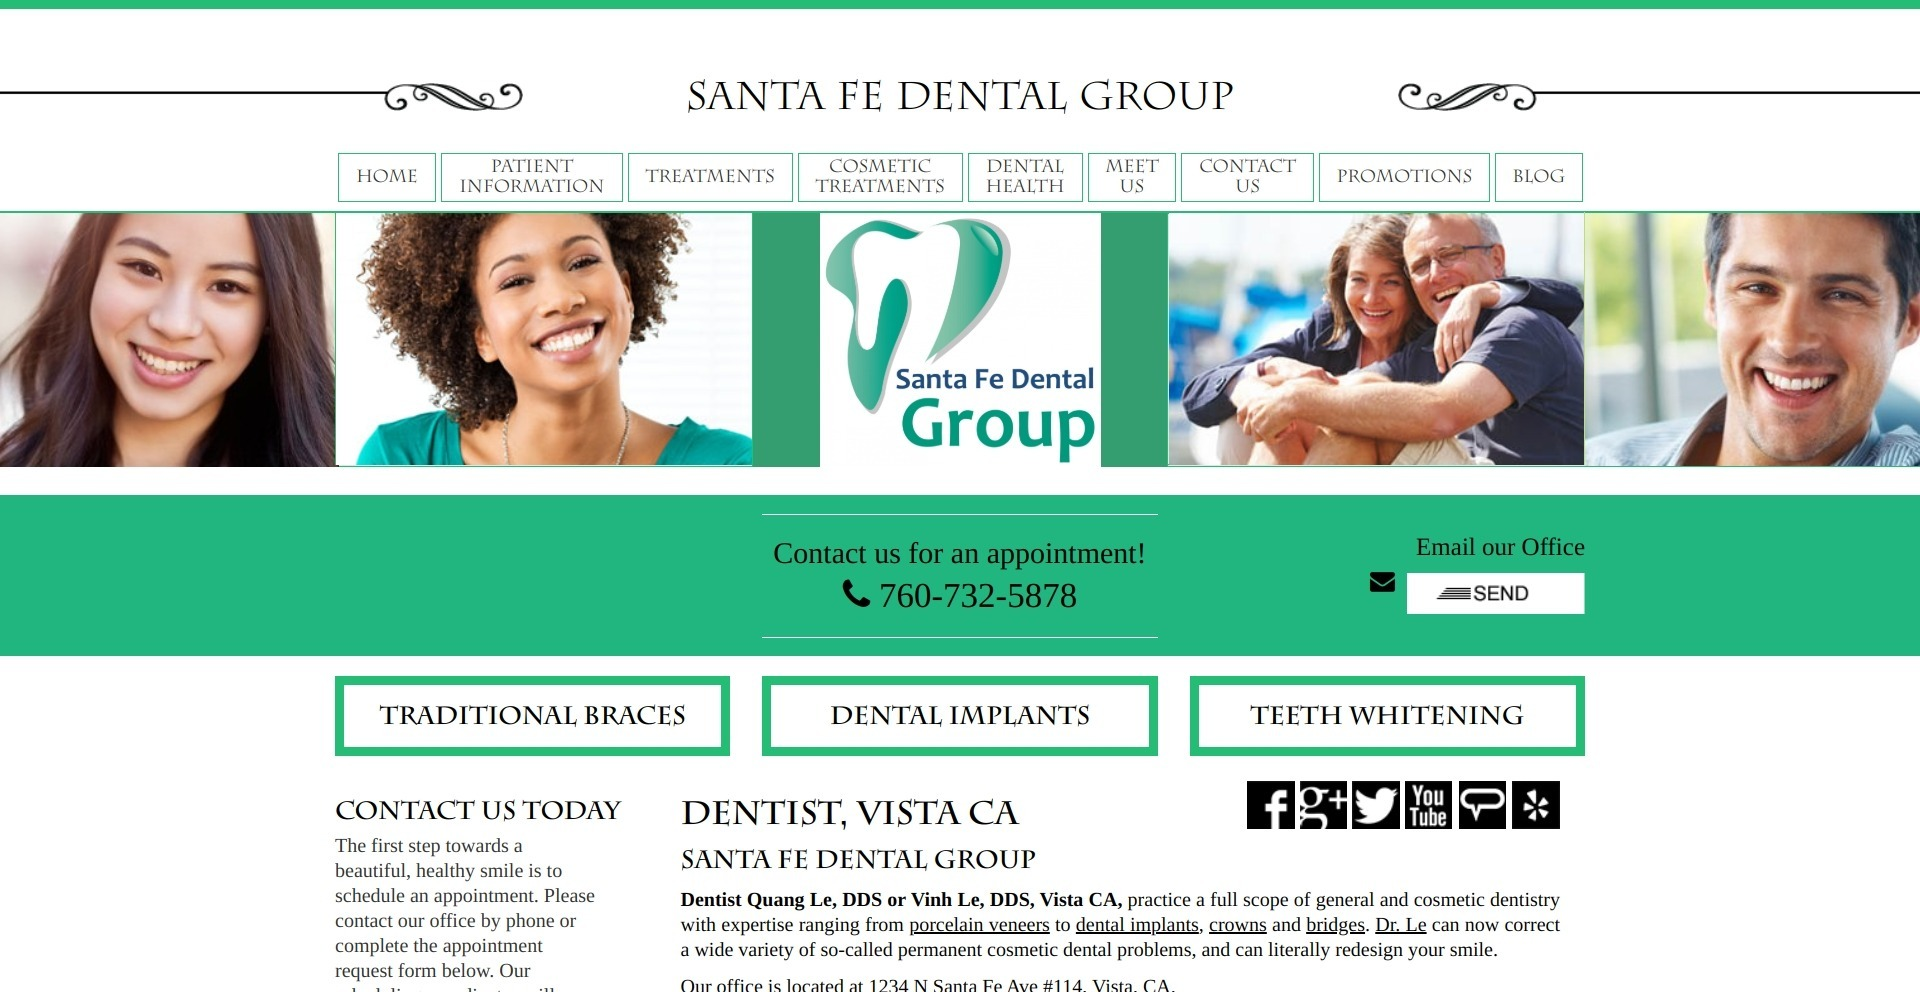 Santa Fe Dental Group